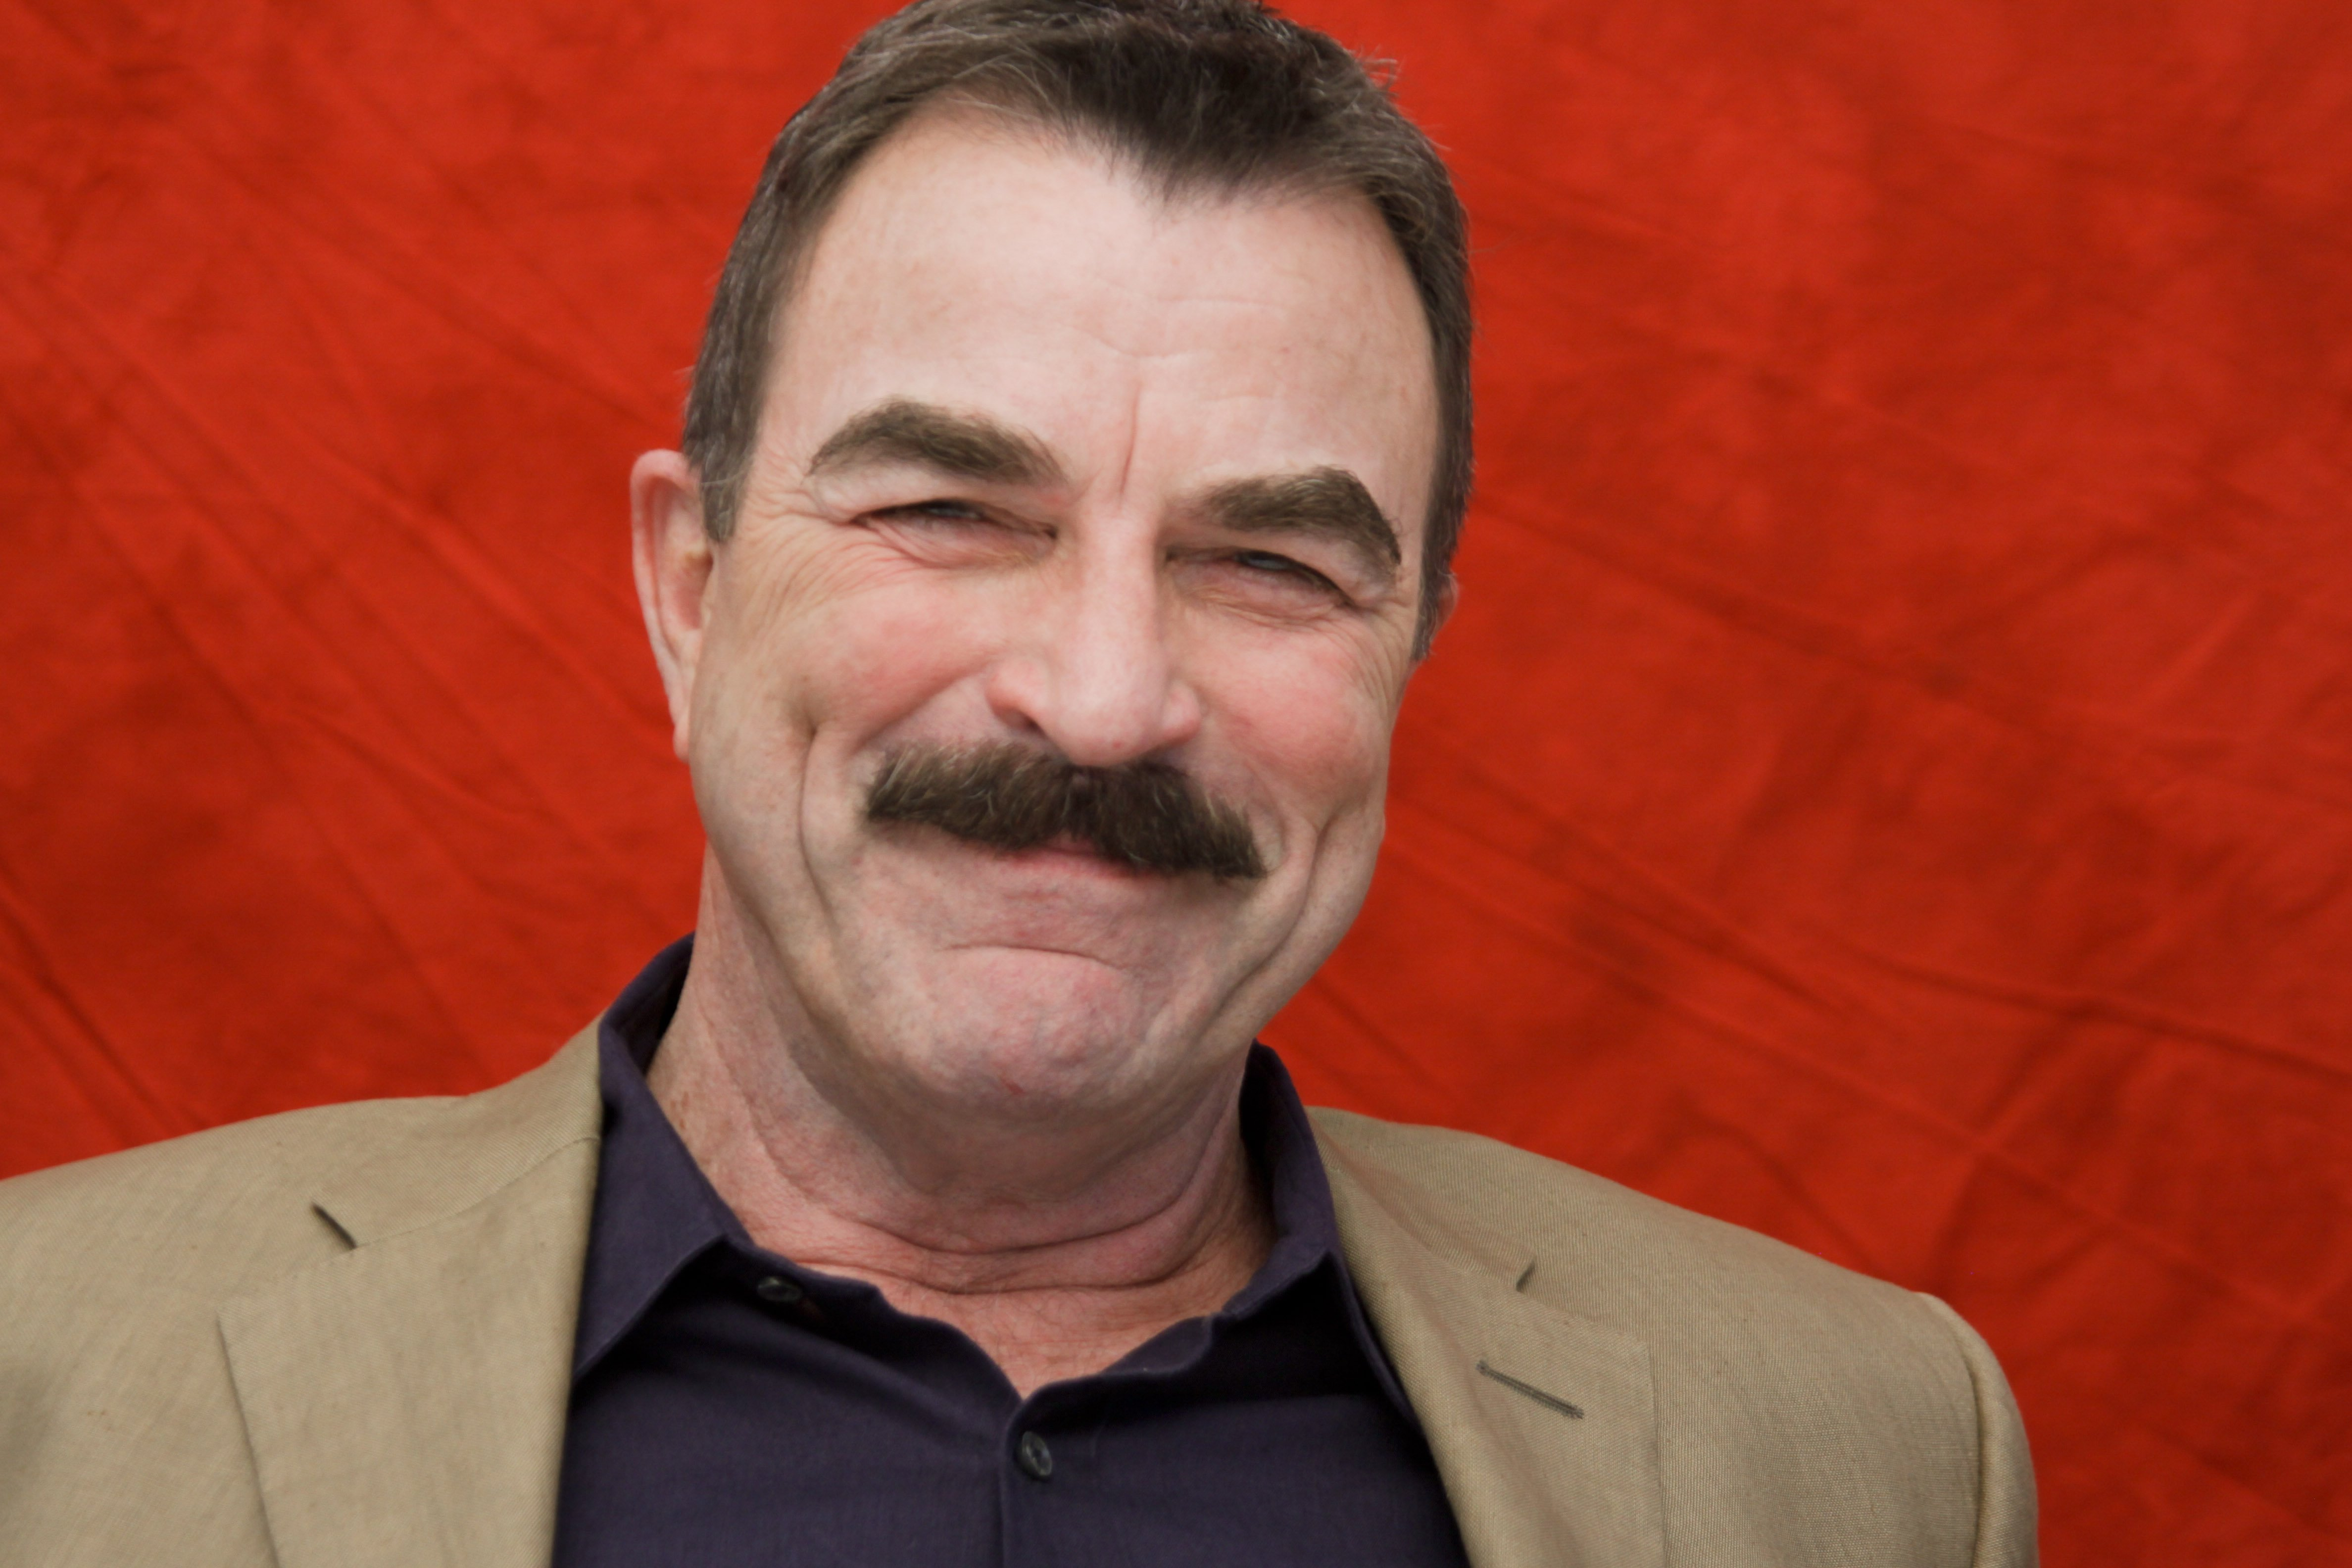 Tom Selleck poses for a photo during a portrait session in West Hollywood, California on August 16, 2010 | Photo: GettyImages